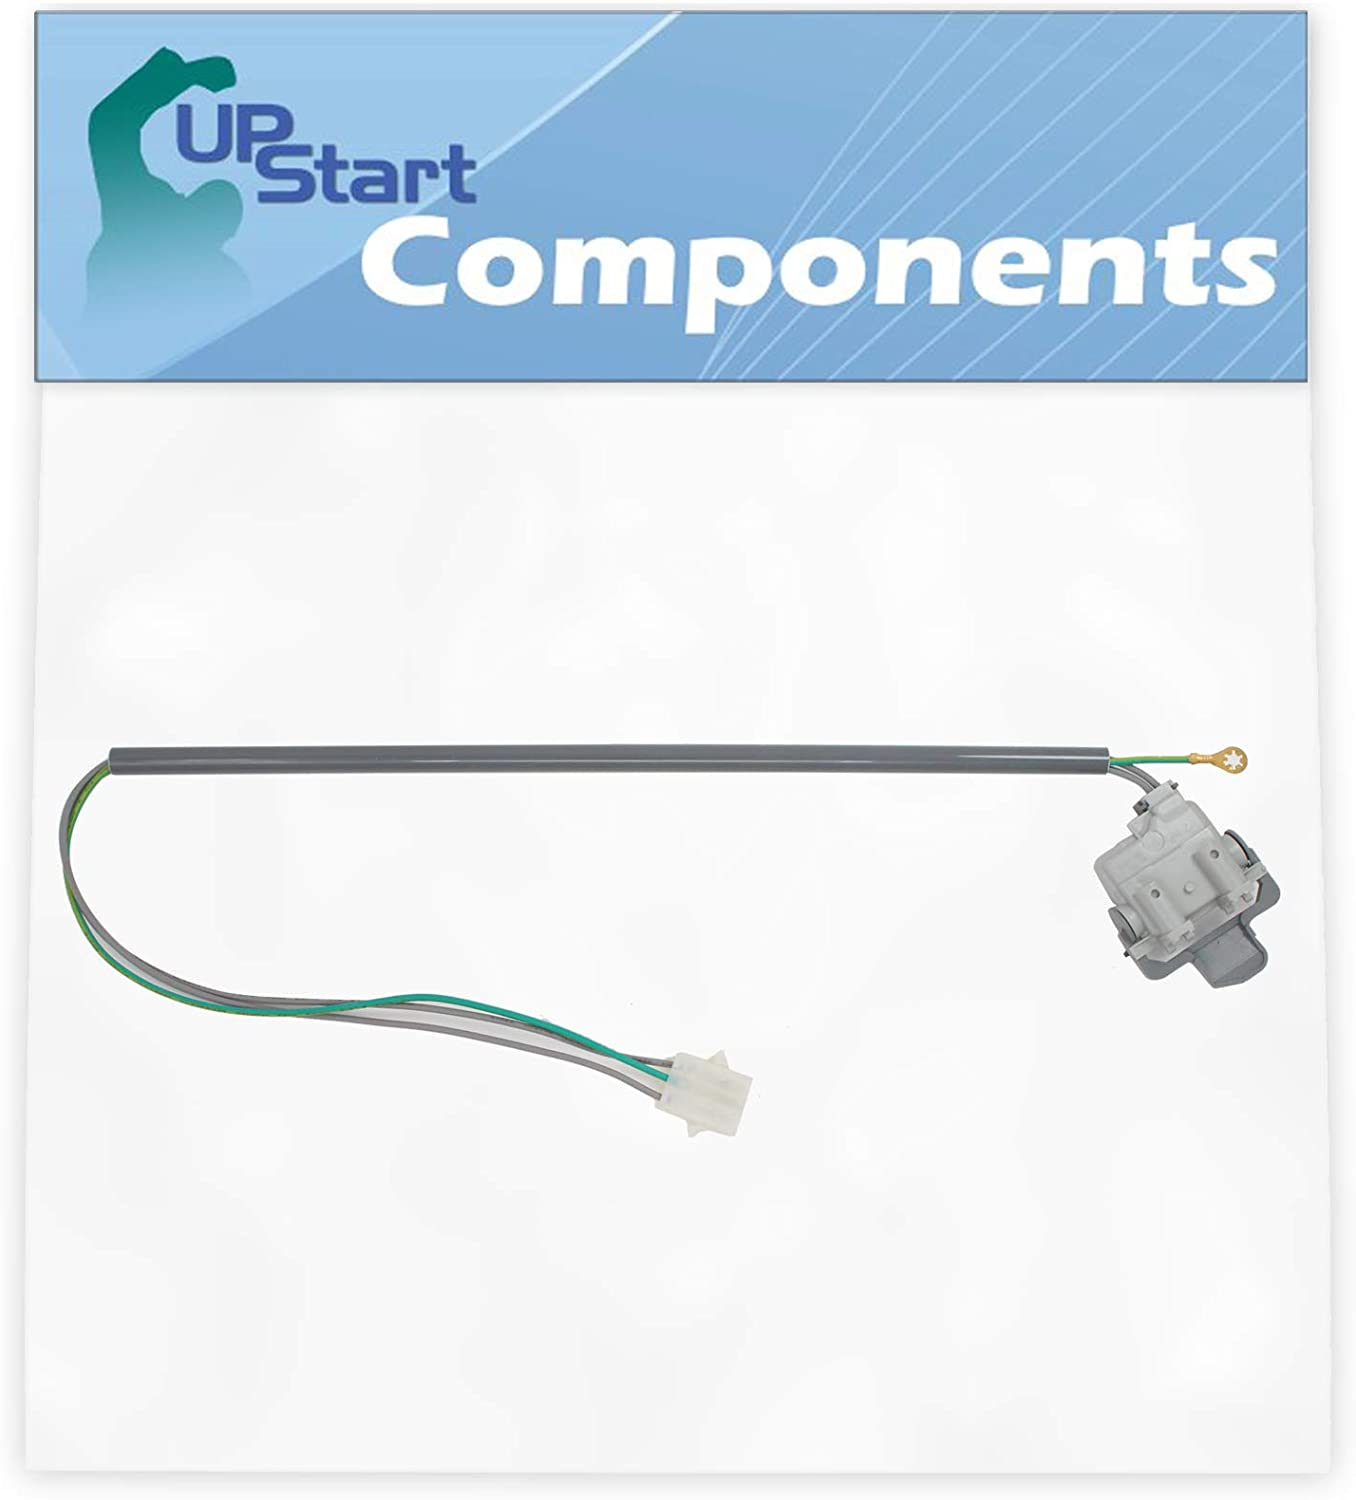 285671 Washer Lid Switch Replacement for Whirlpool LA5381XXW1 Washing Machine - Compatible with 3352630 Lid Switch - UpStart Components Brand